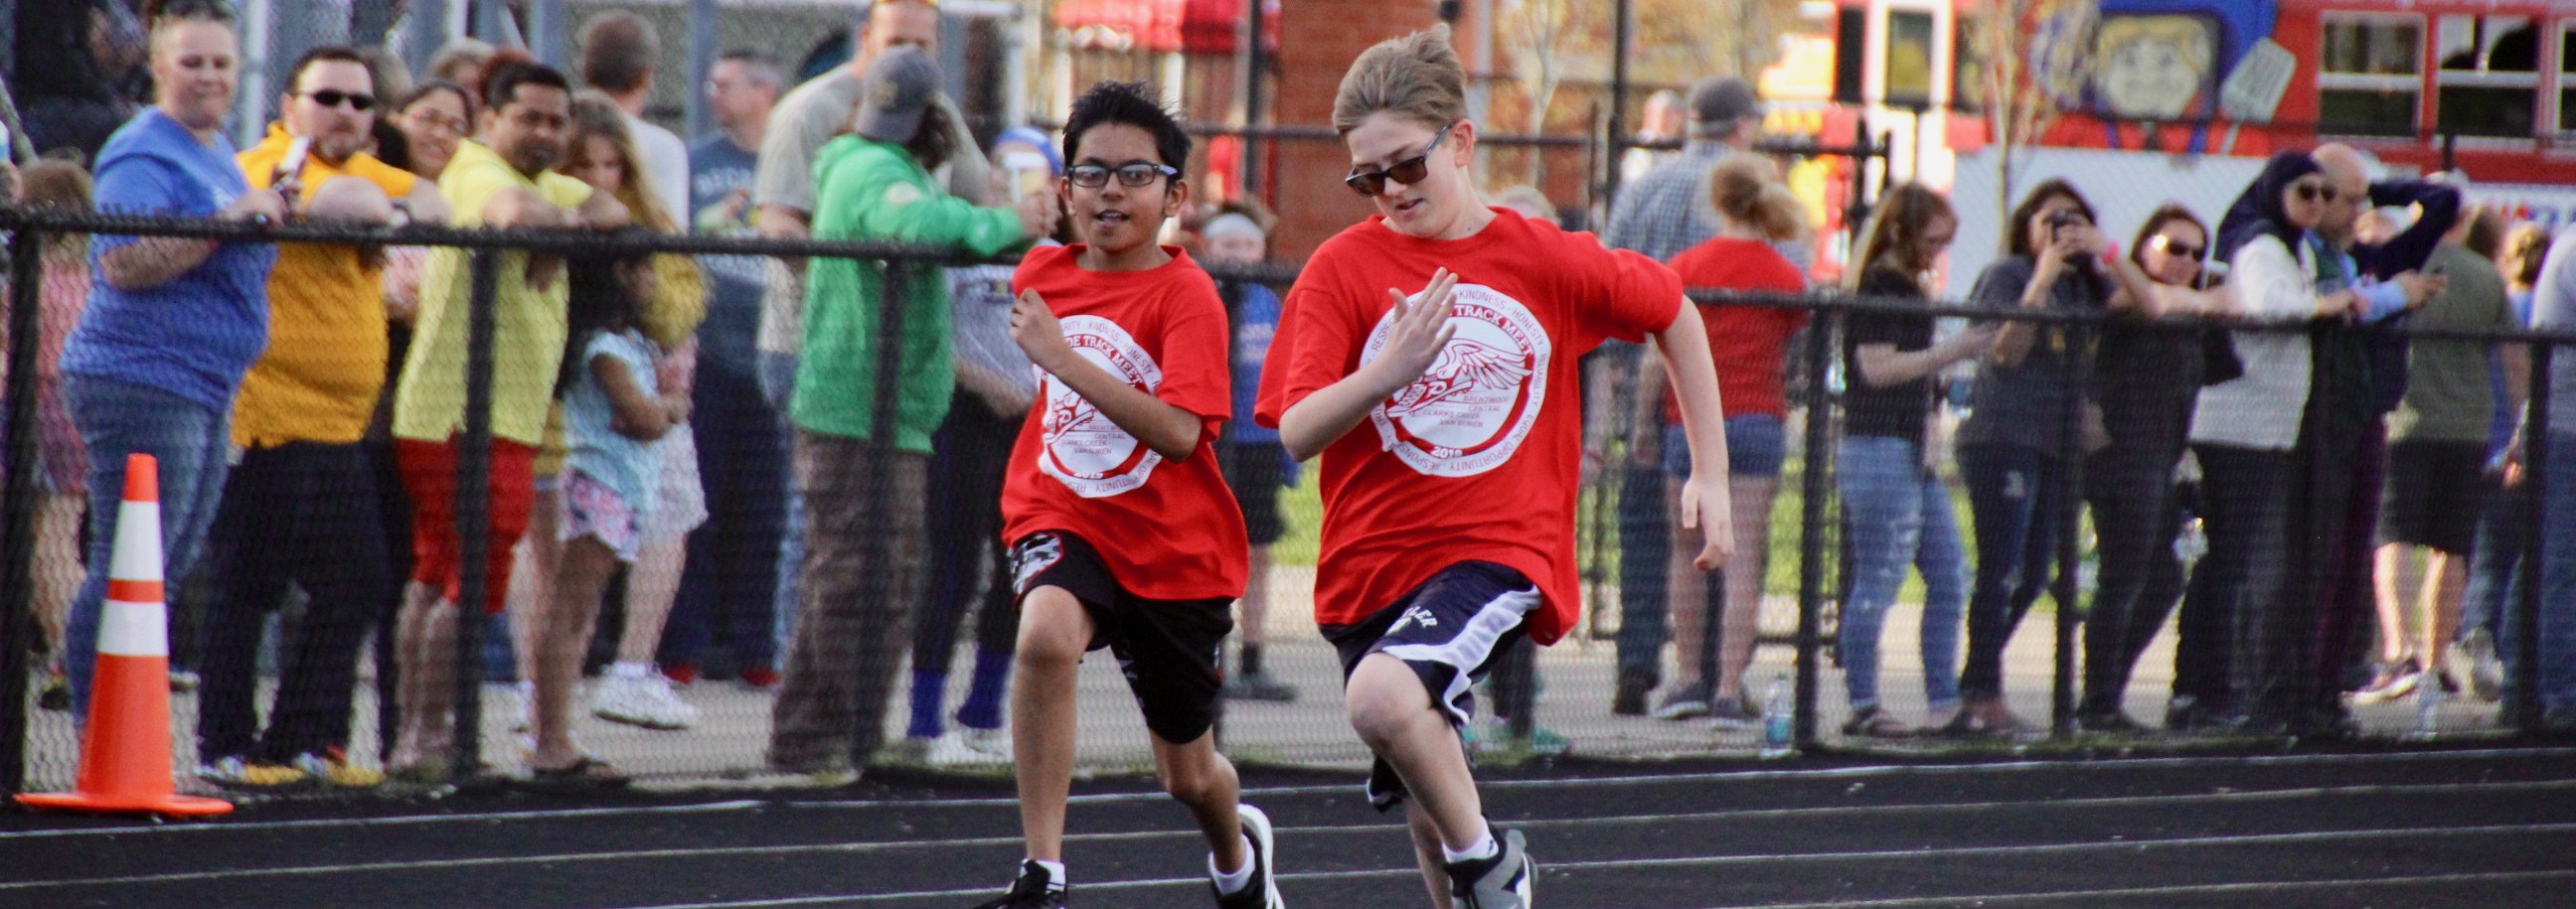 The 5th grade track meet, held at the high school track and field, brings together students from all four elementary schools for a fun evening of friendly competition.